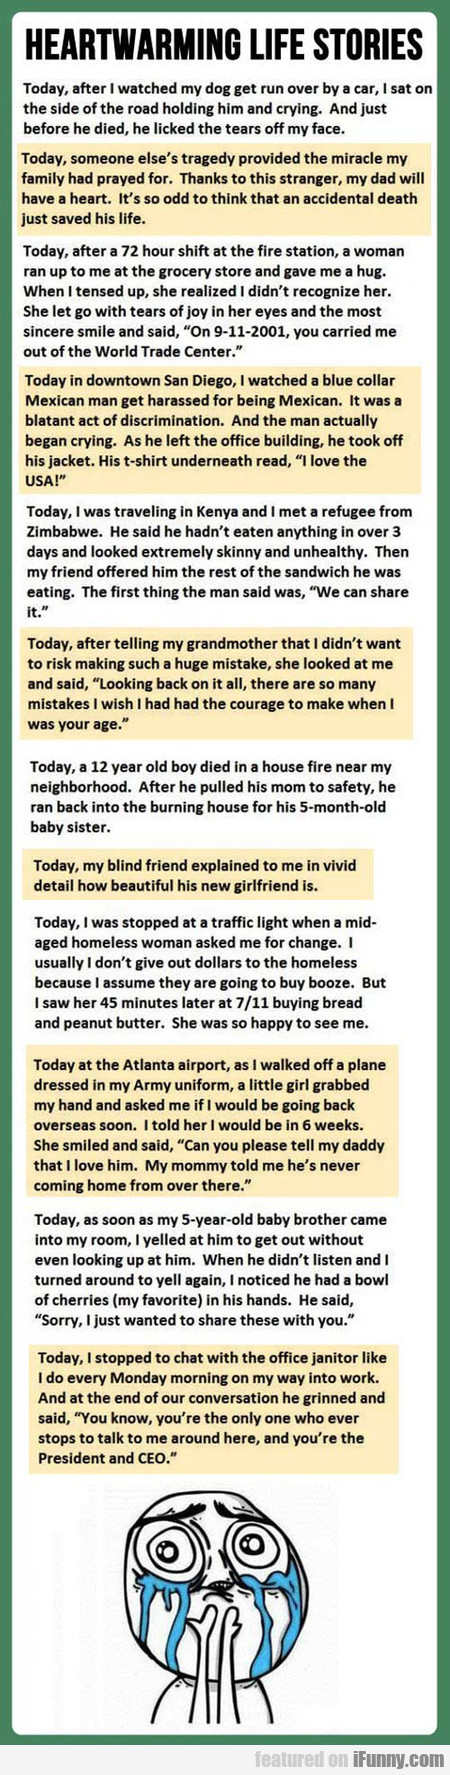 Heartwarming Life Stories